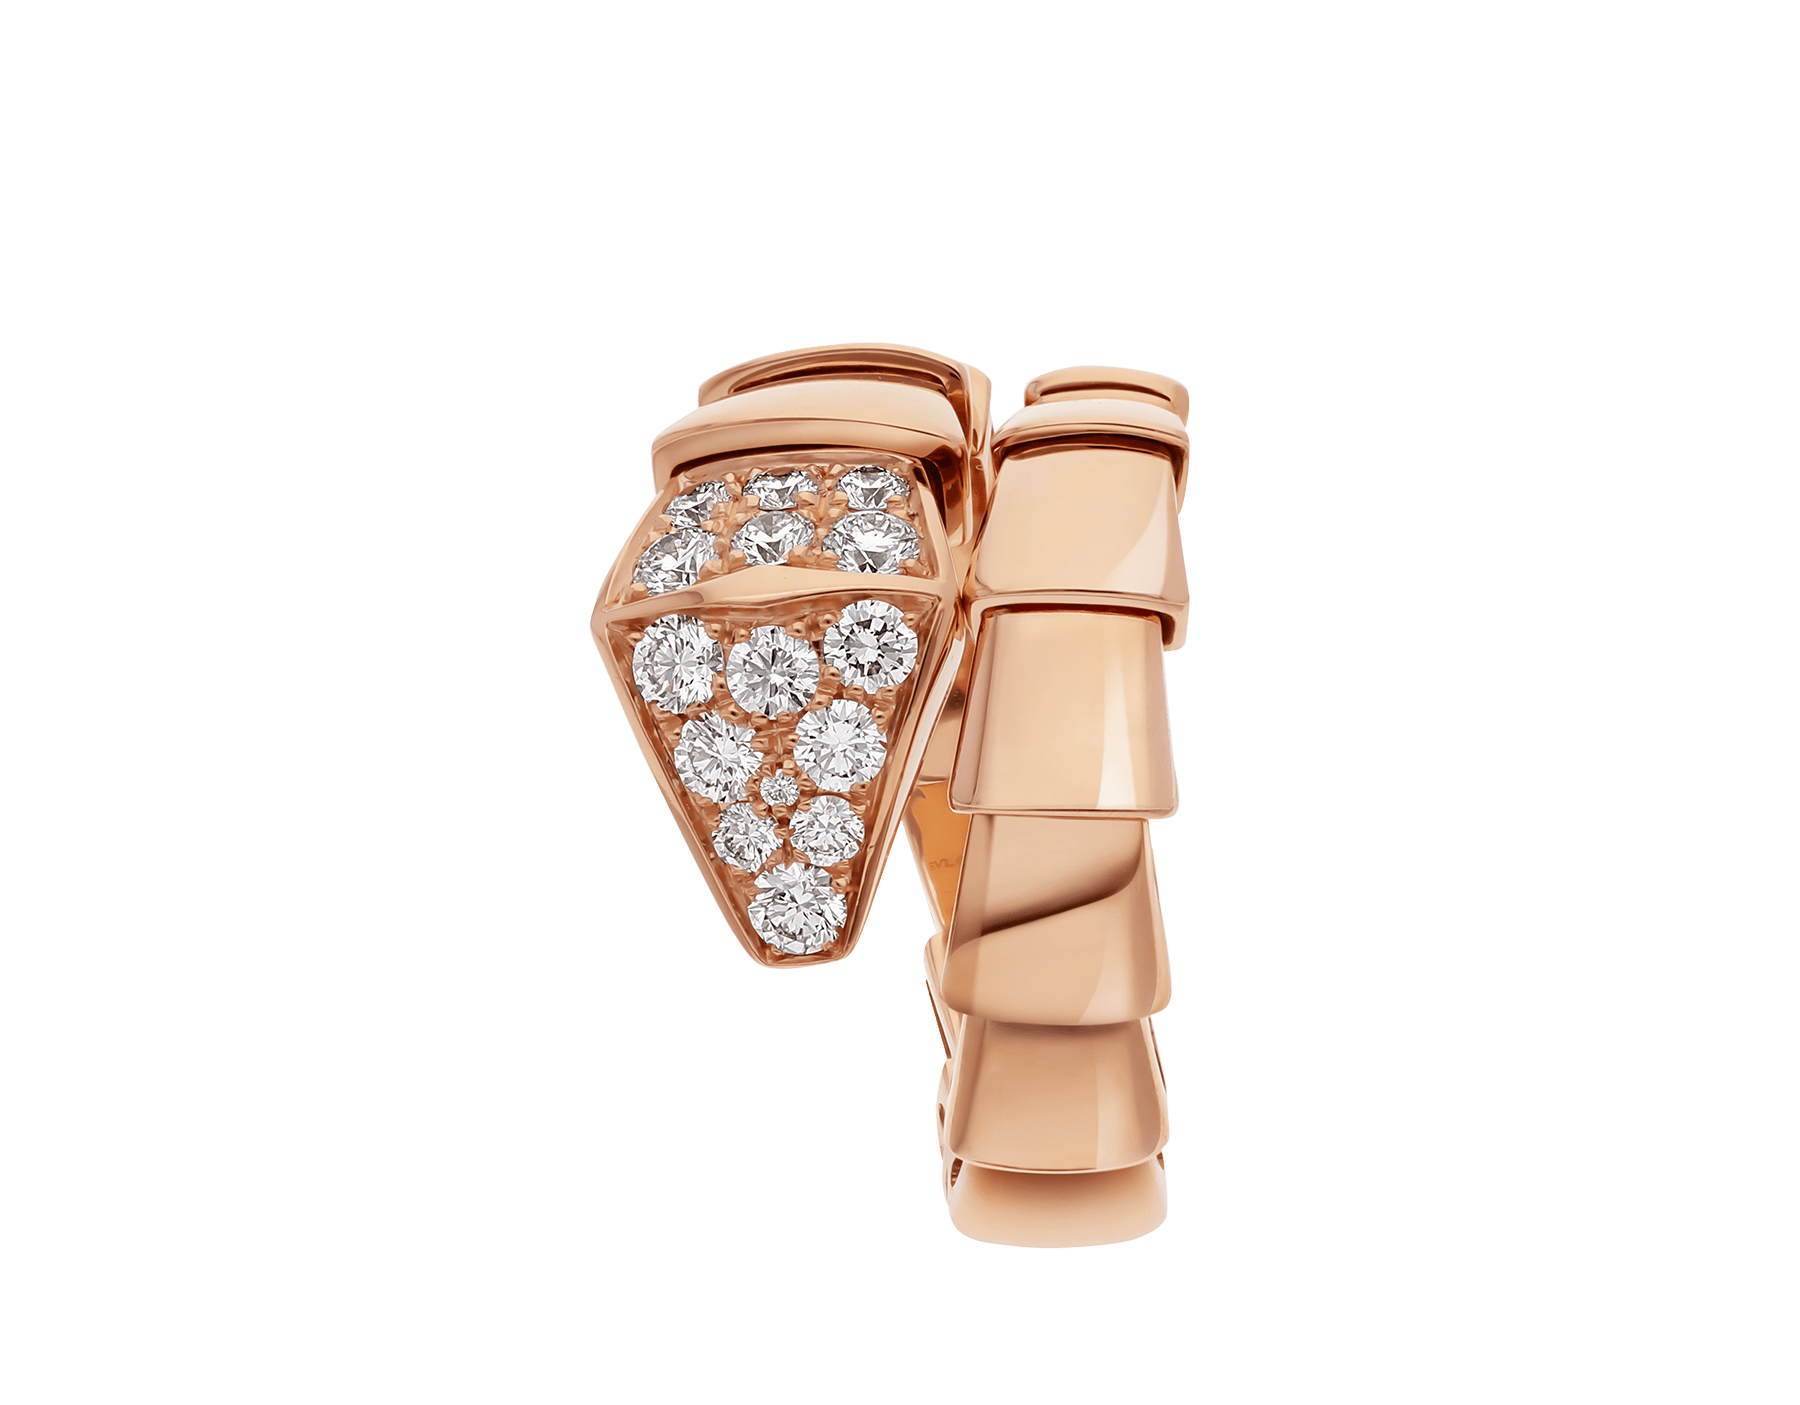 Serpenti one-coil ring in 18 kt rose gold, set with pavé diamonds on the head. AN855318 image 2